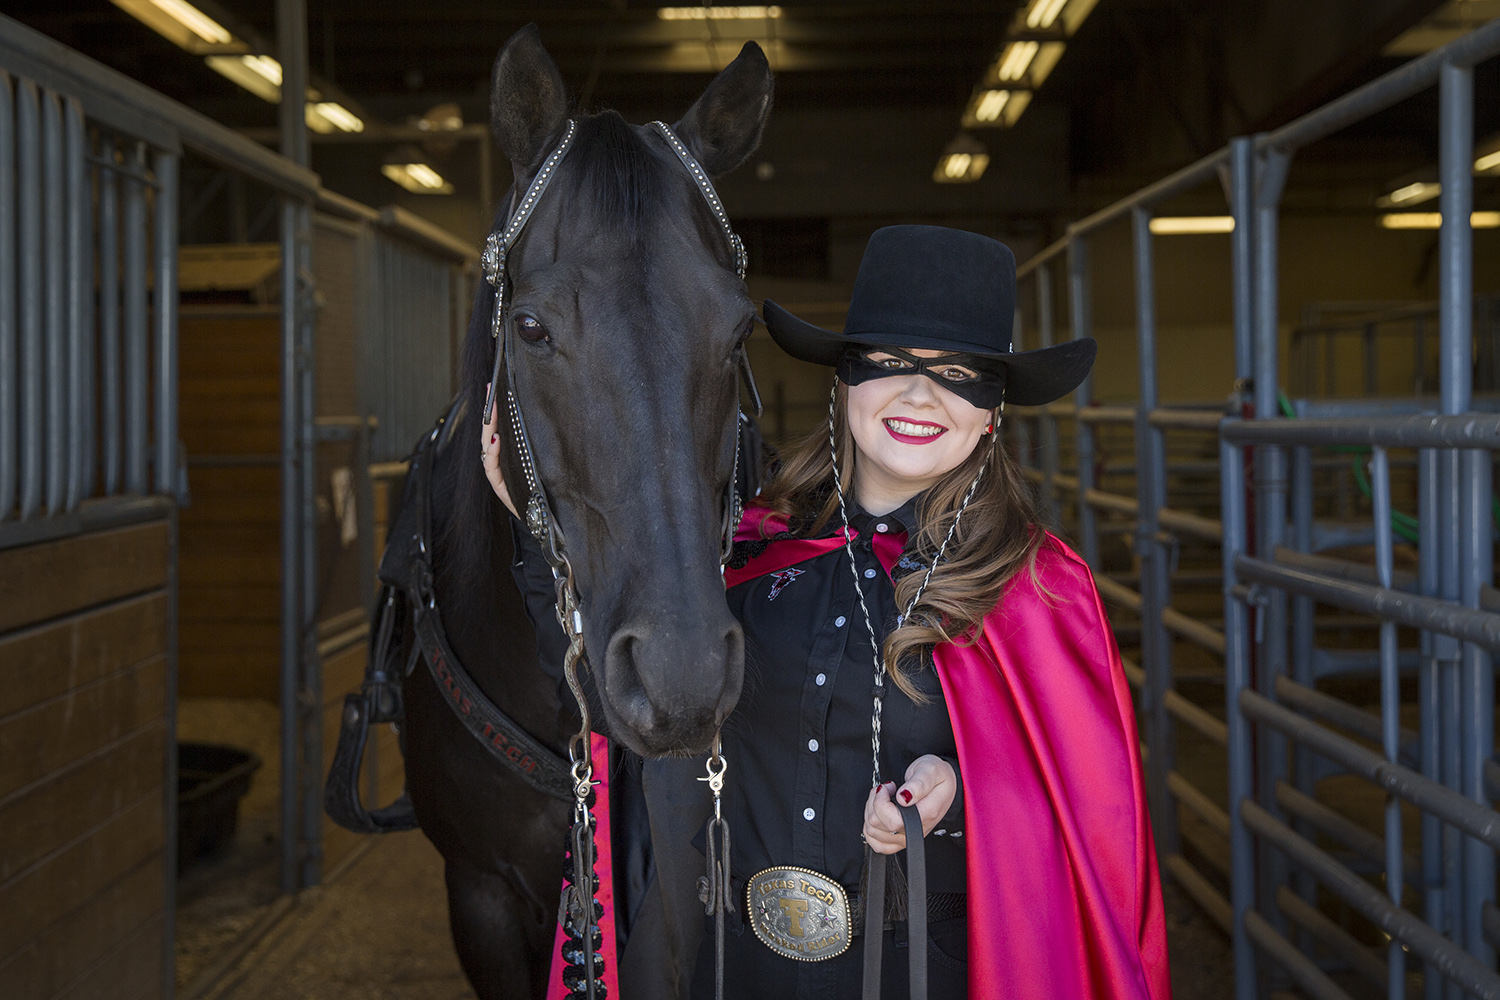 2019-20 Texas Tech Masked Rider Unveiled at Transfer of Reins